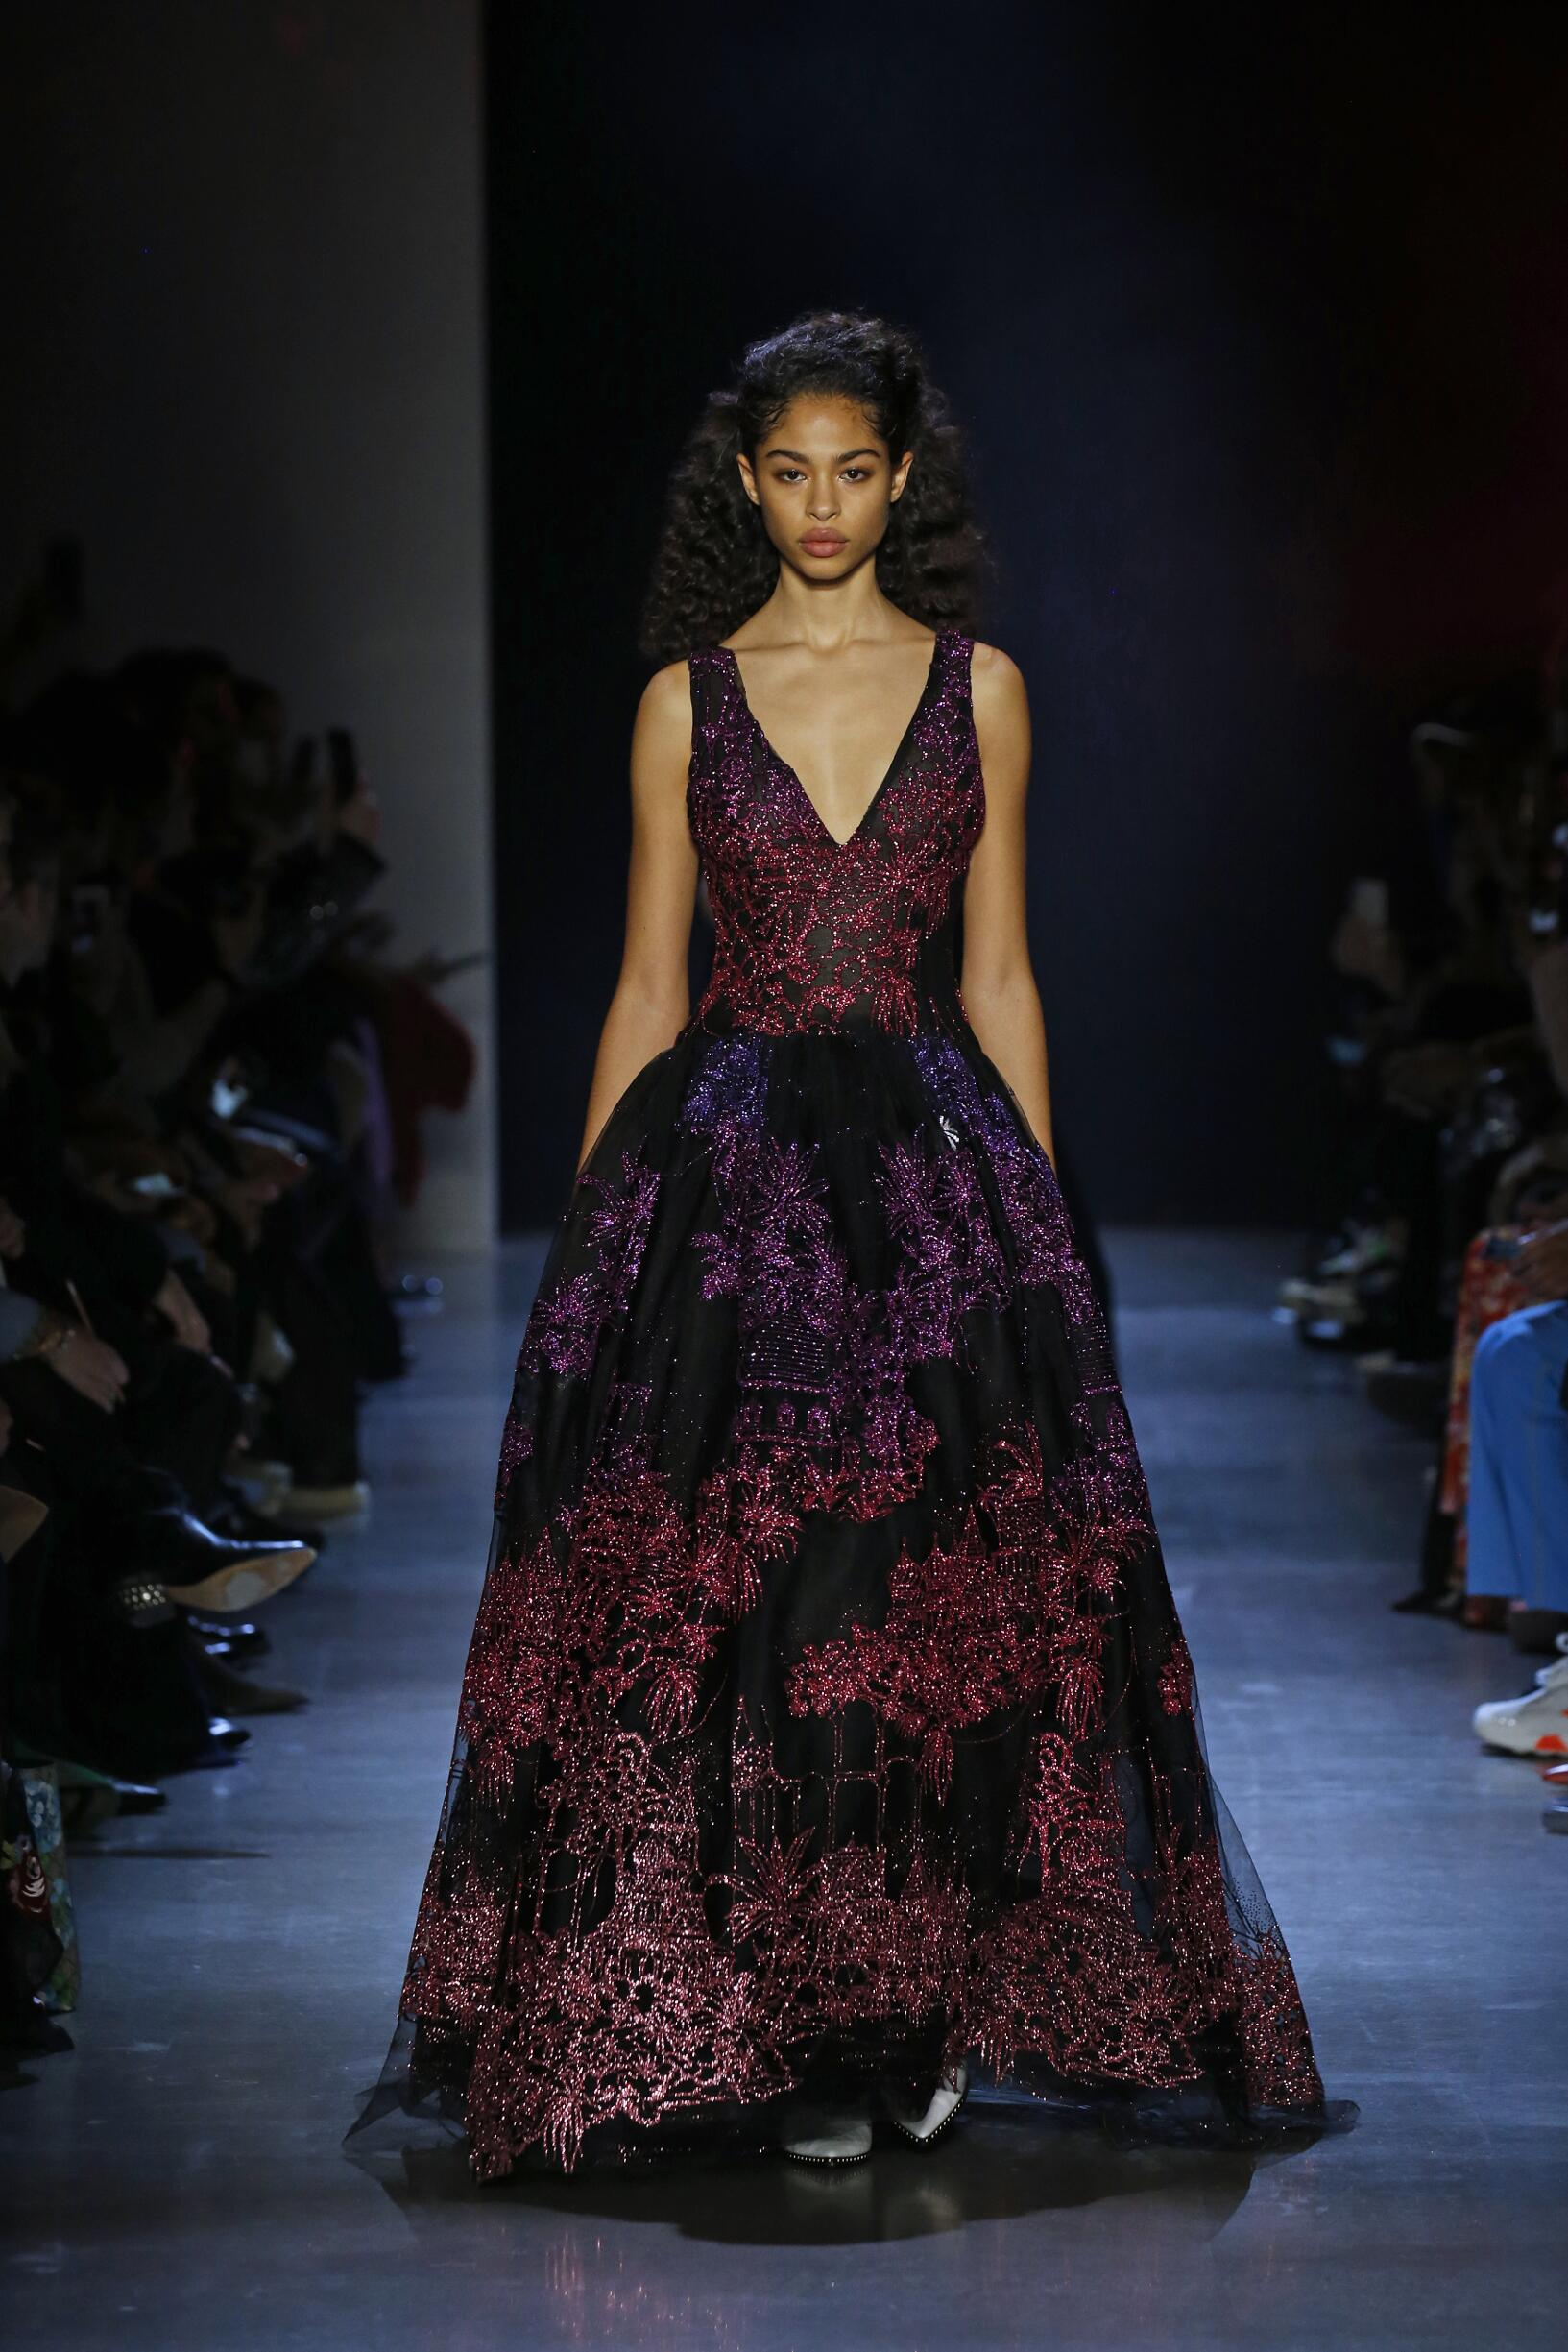 2019 Prabal Gurung Winter Runway